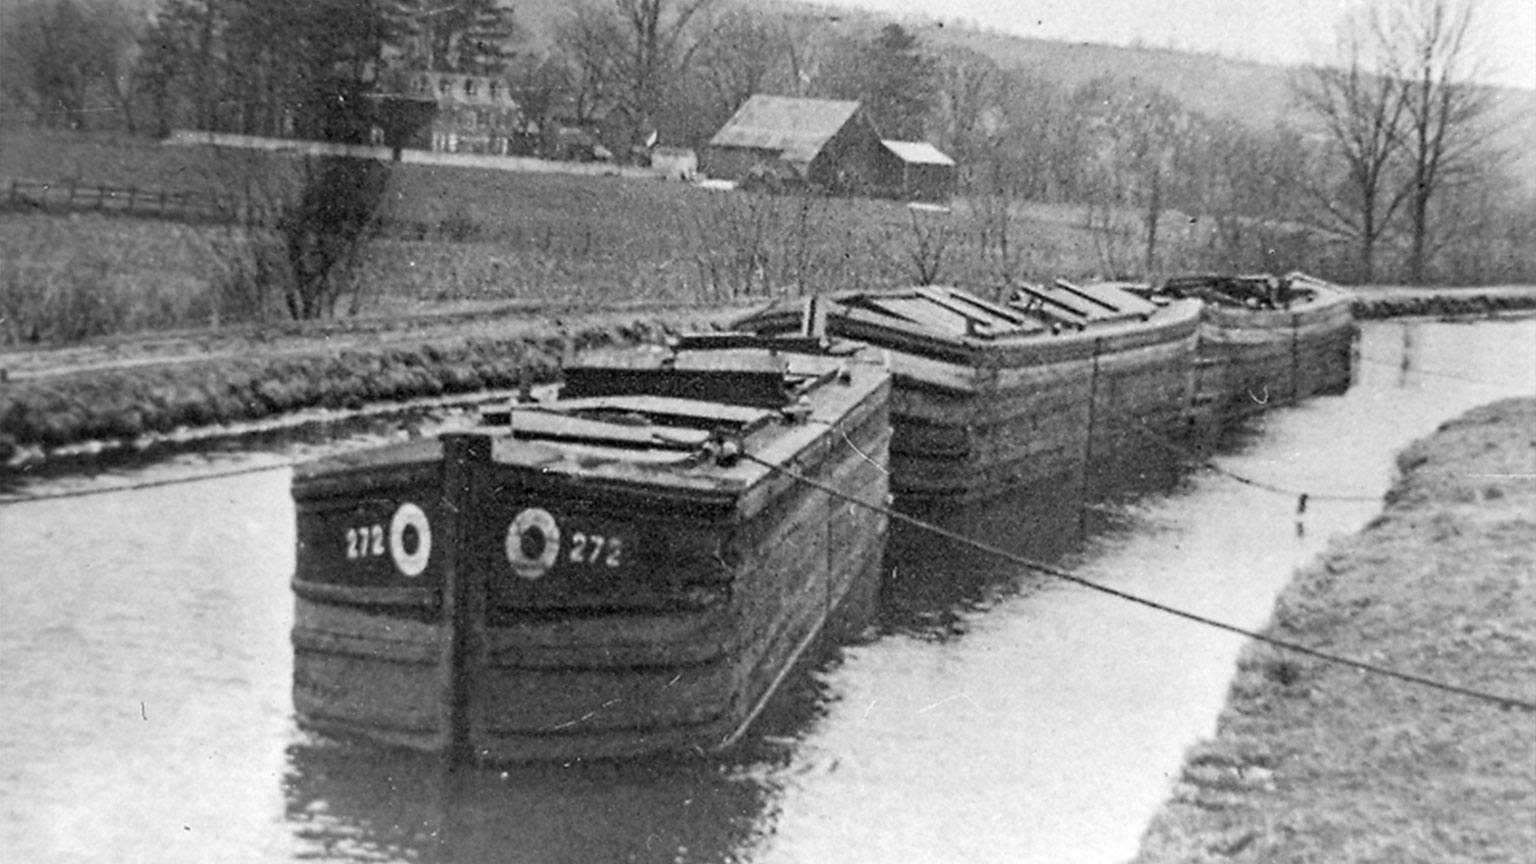 When it was time to stop for the night or on Sundays this is how canal boats would tie up to the banks.